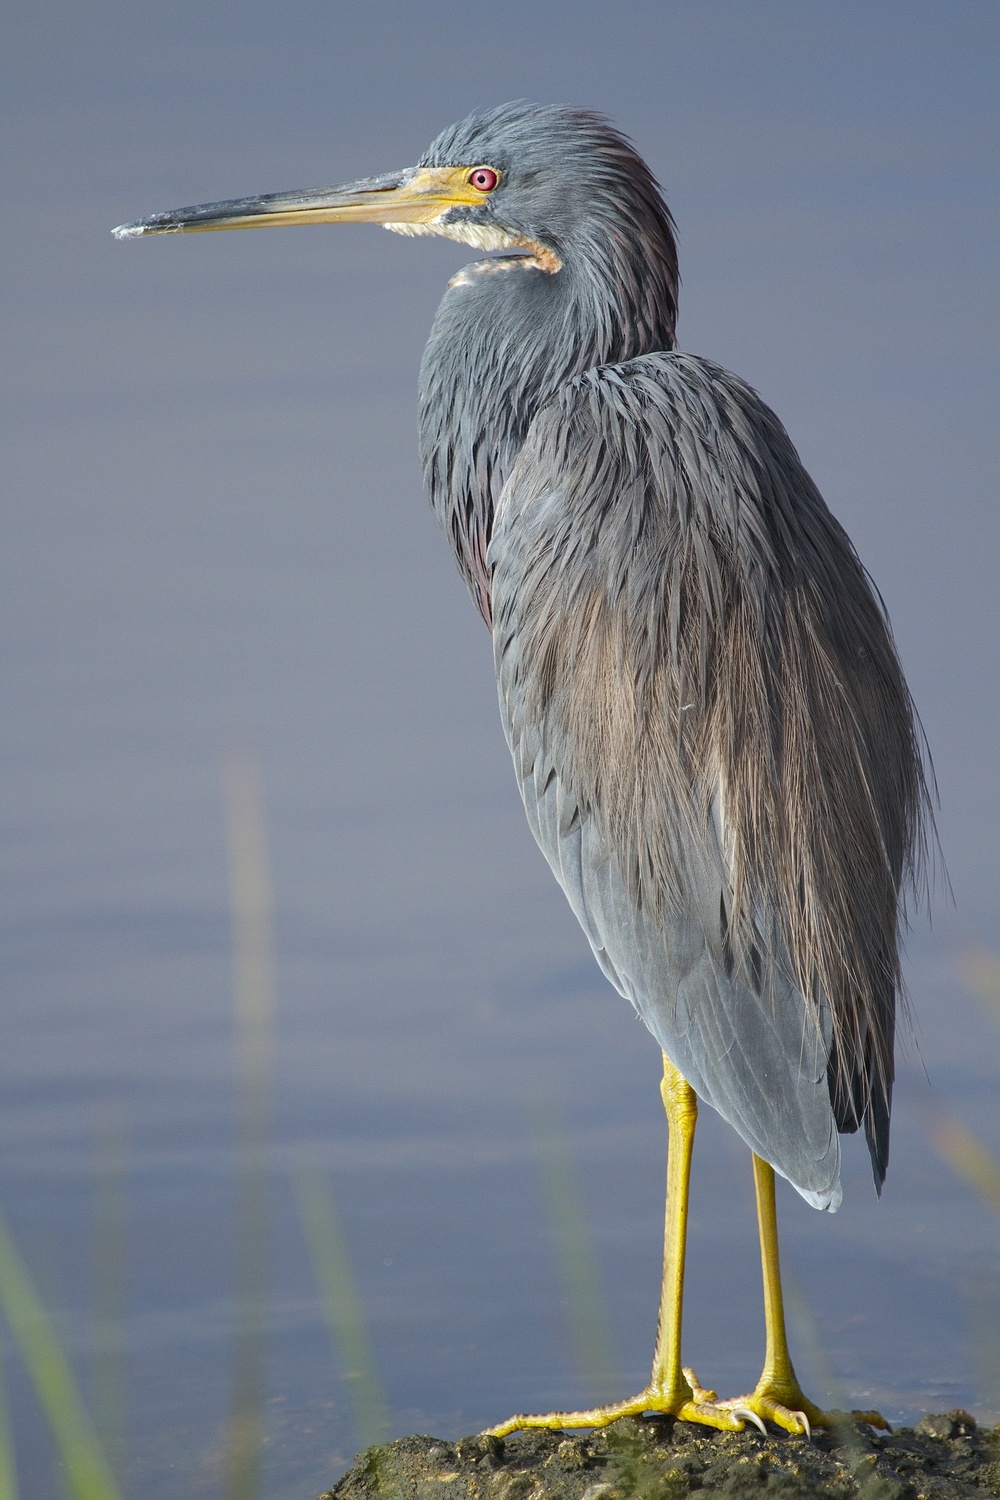 Bout time you got up the Tricolored Heron seems to say.